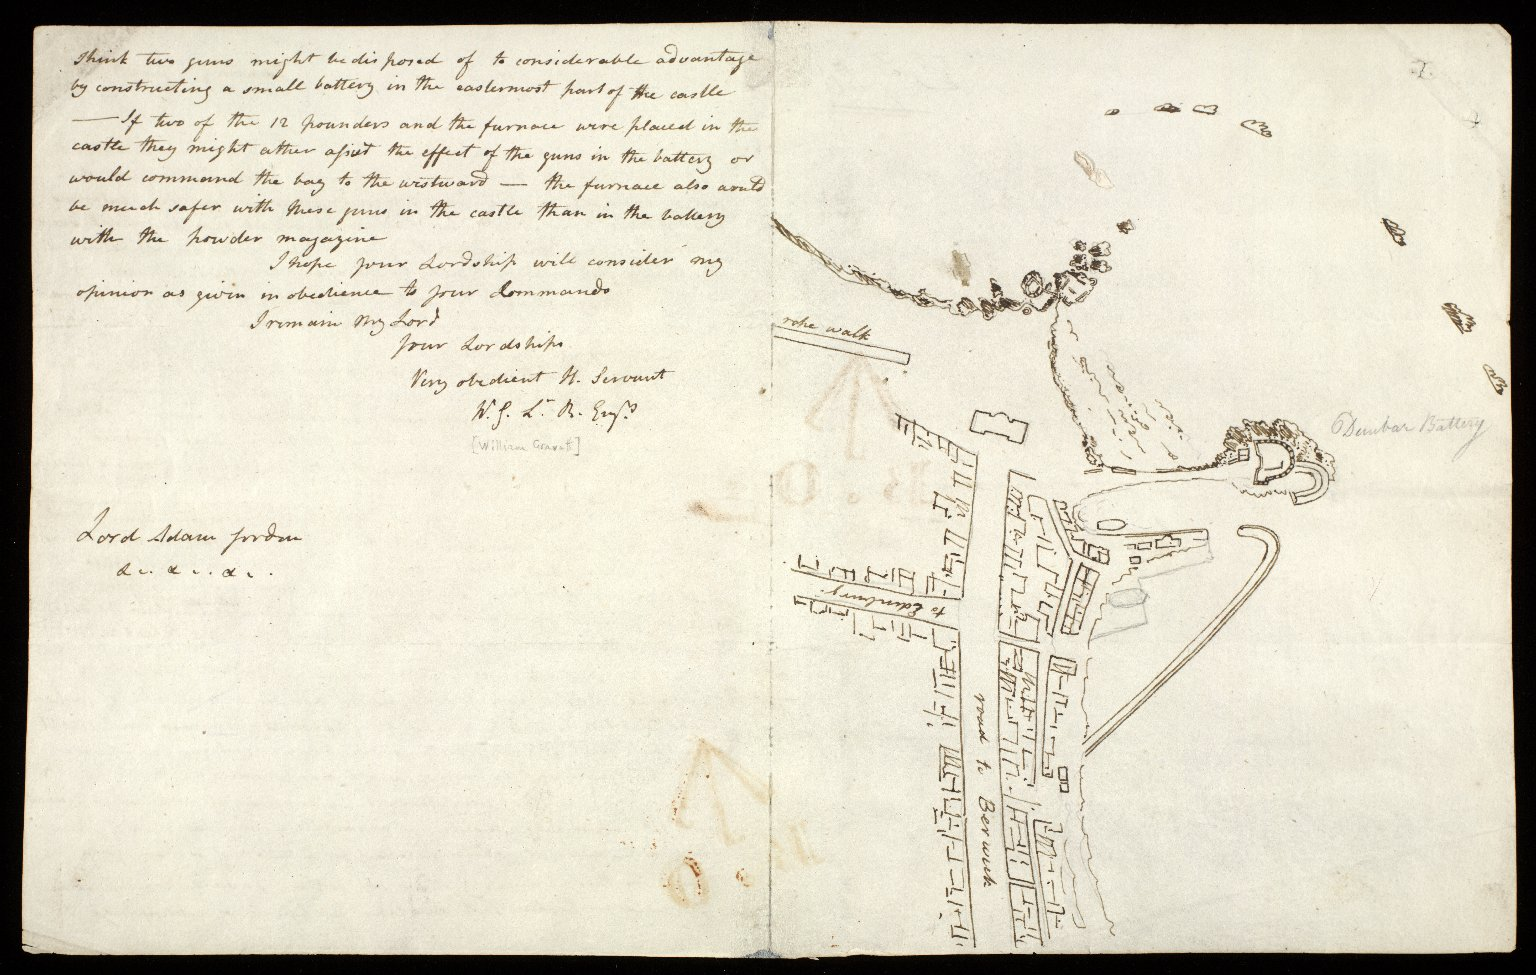 [Letter containing report on Dunbar battery with sketches] [2 of 2]